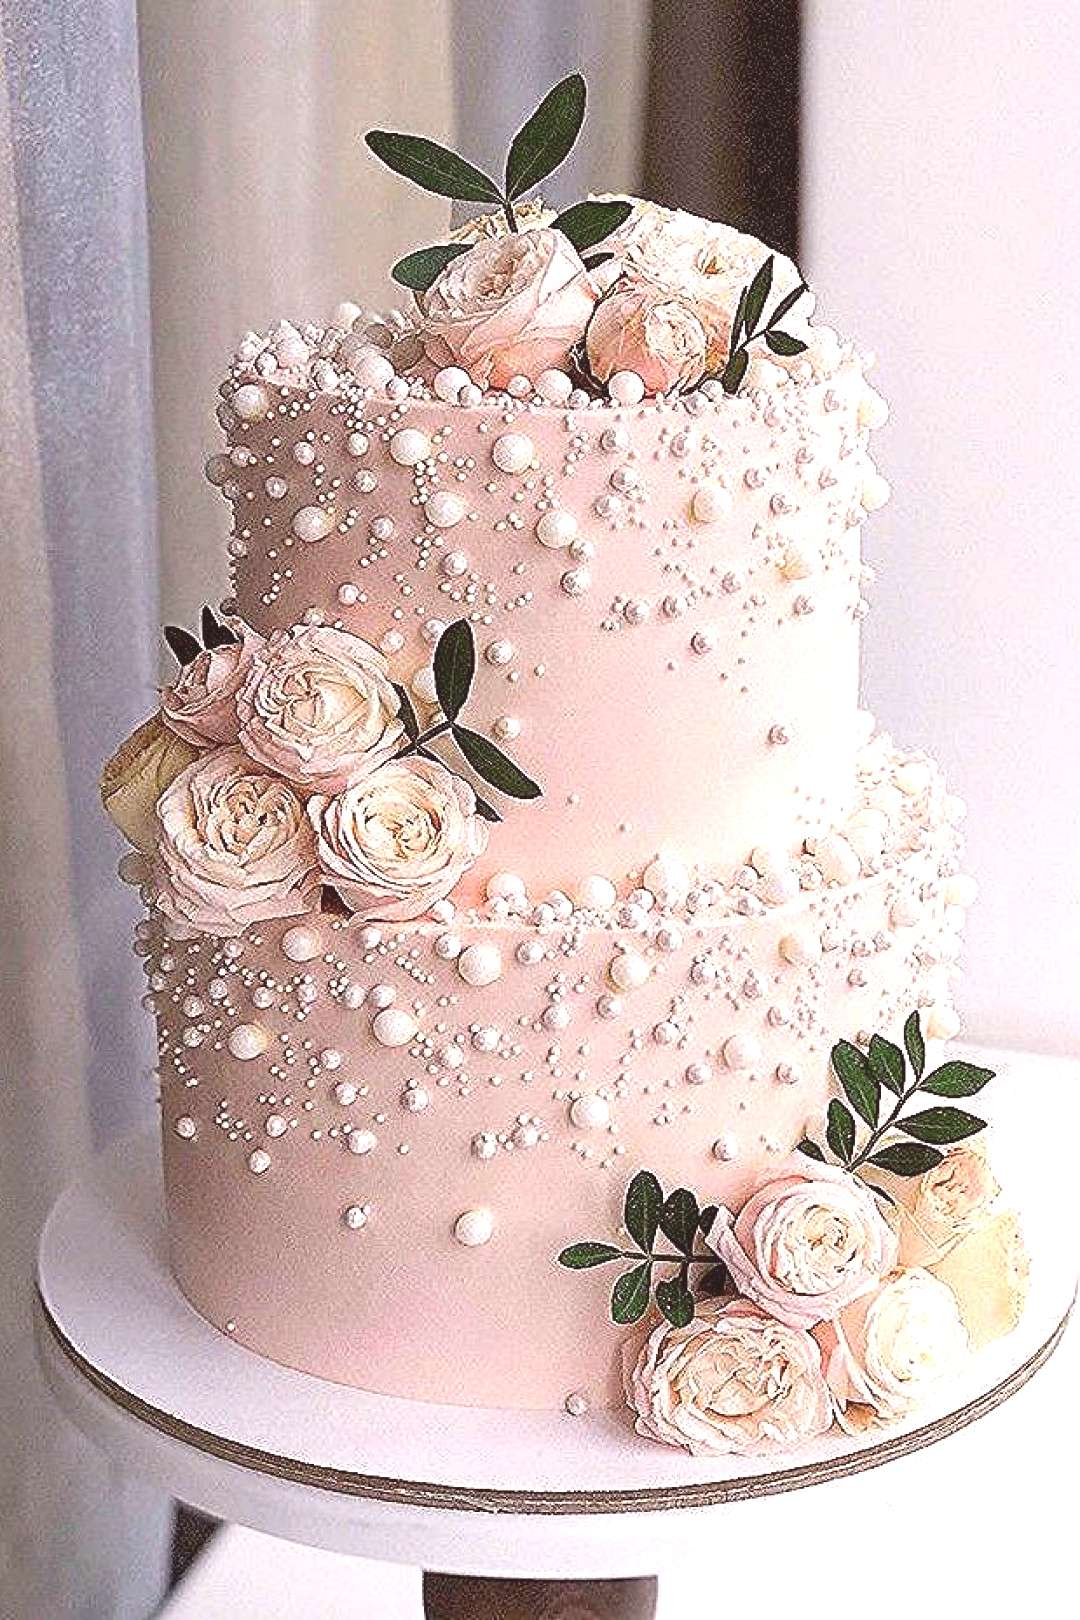 The 20 most beautiful wedding cakes - my blog - The 20 Most Beautiful Wedding Cakes 5 tips for a m